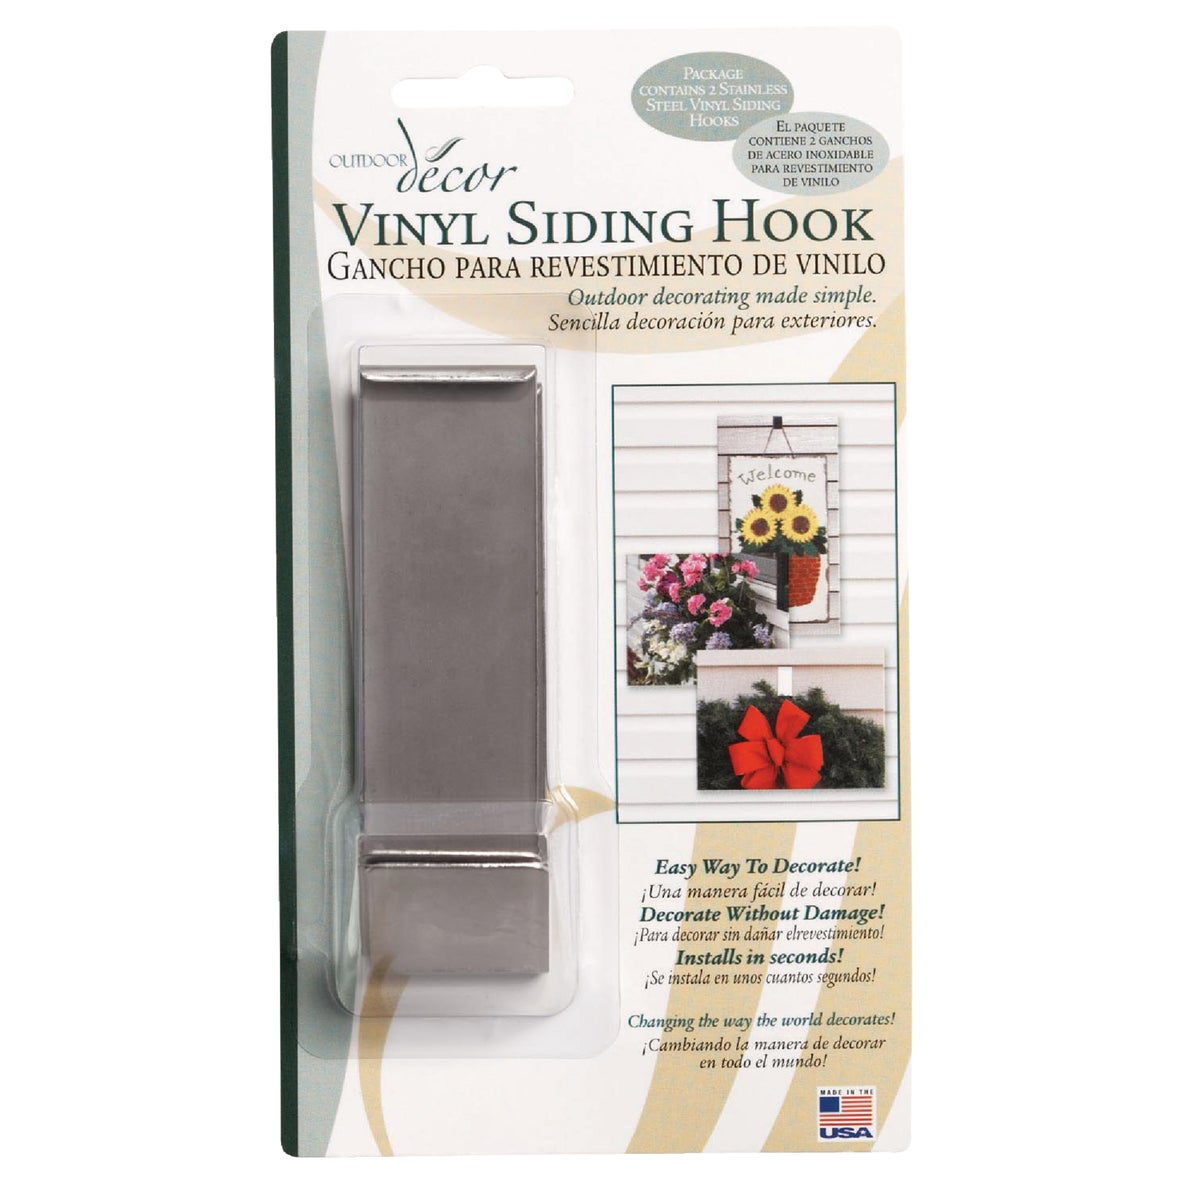 2PK VINYL SIDING HOOK - VSH05 by Bolster America Inc